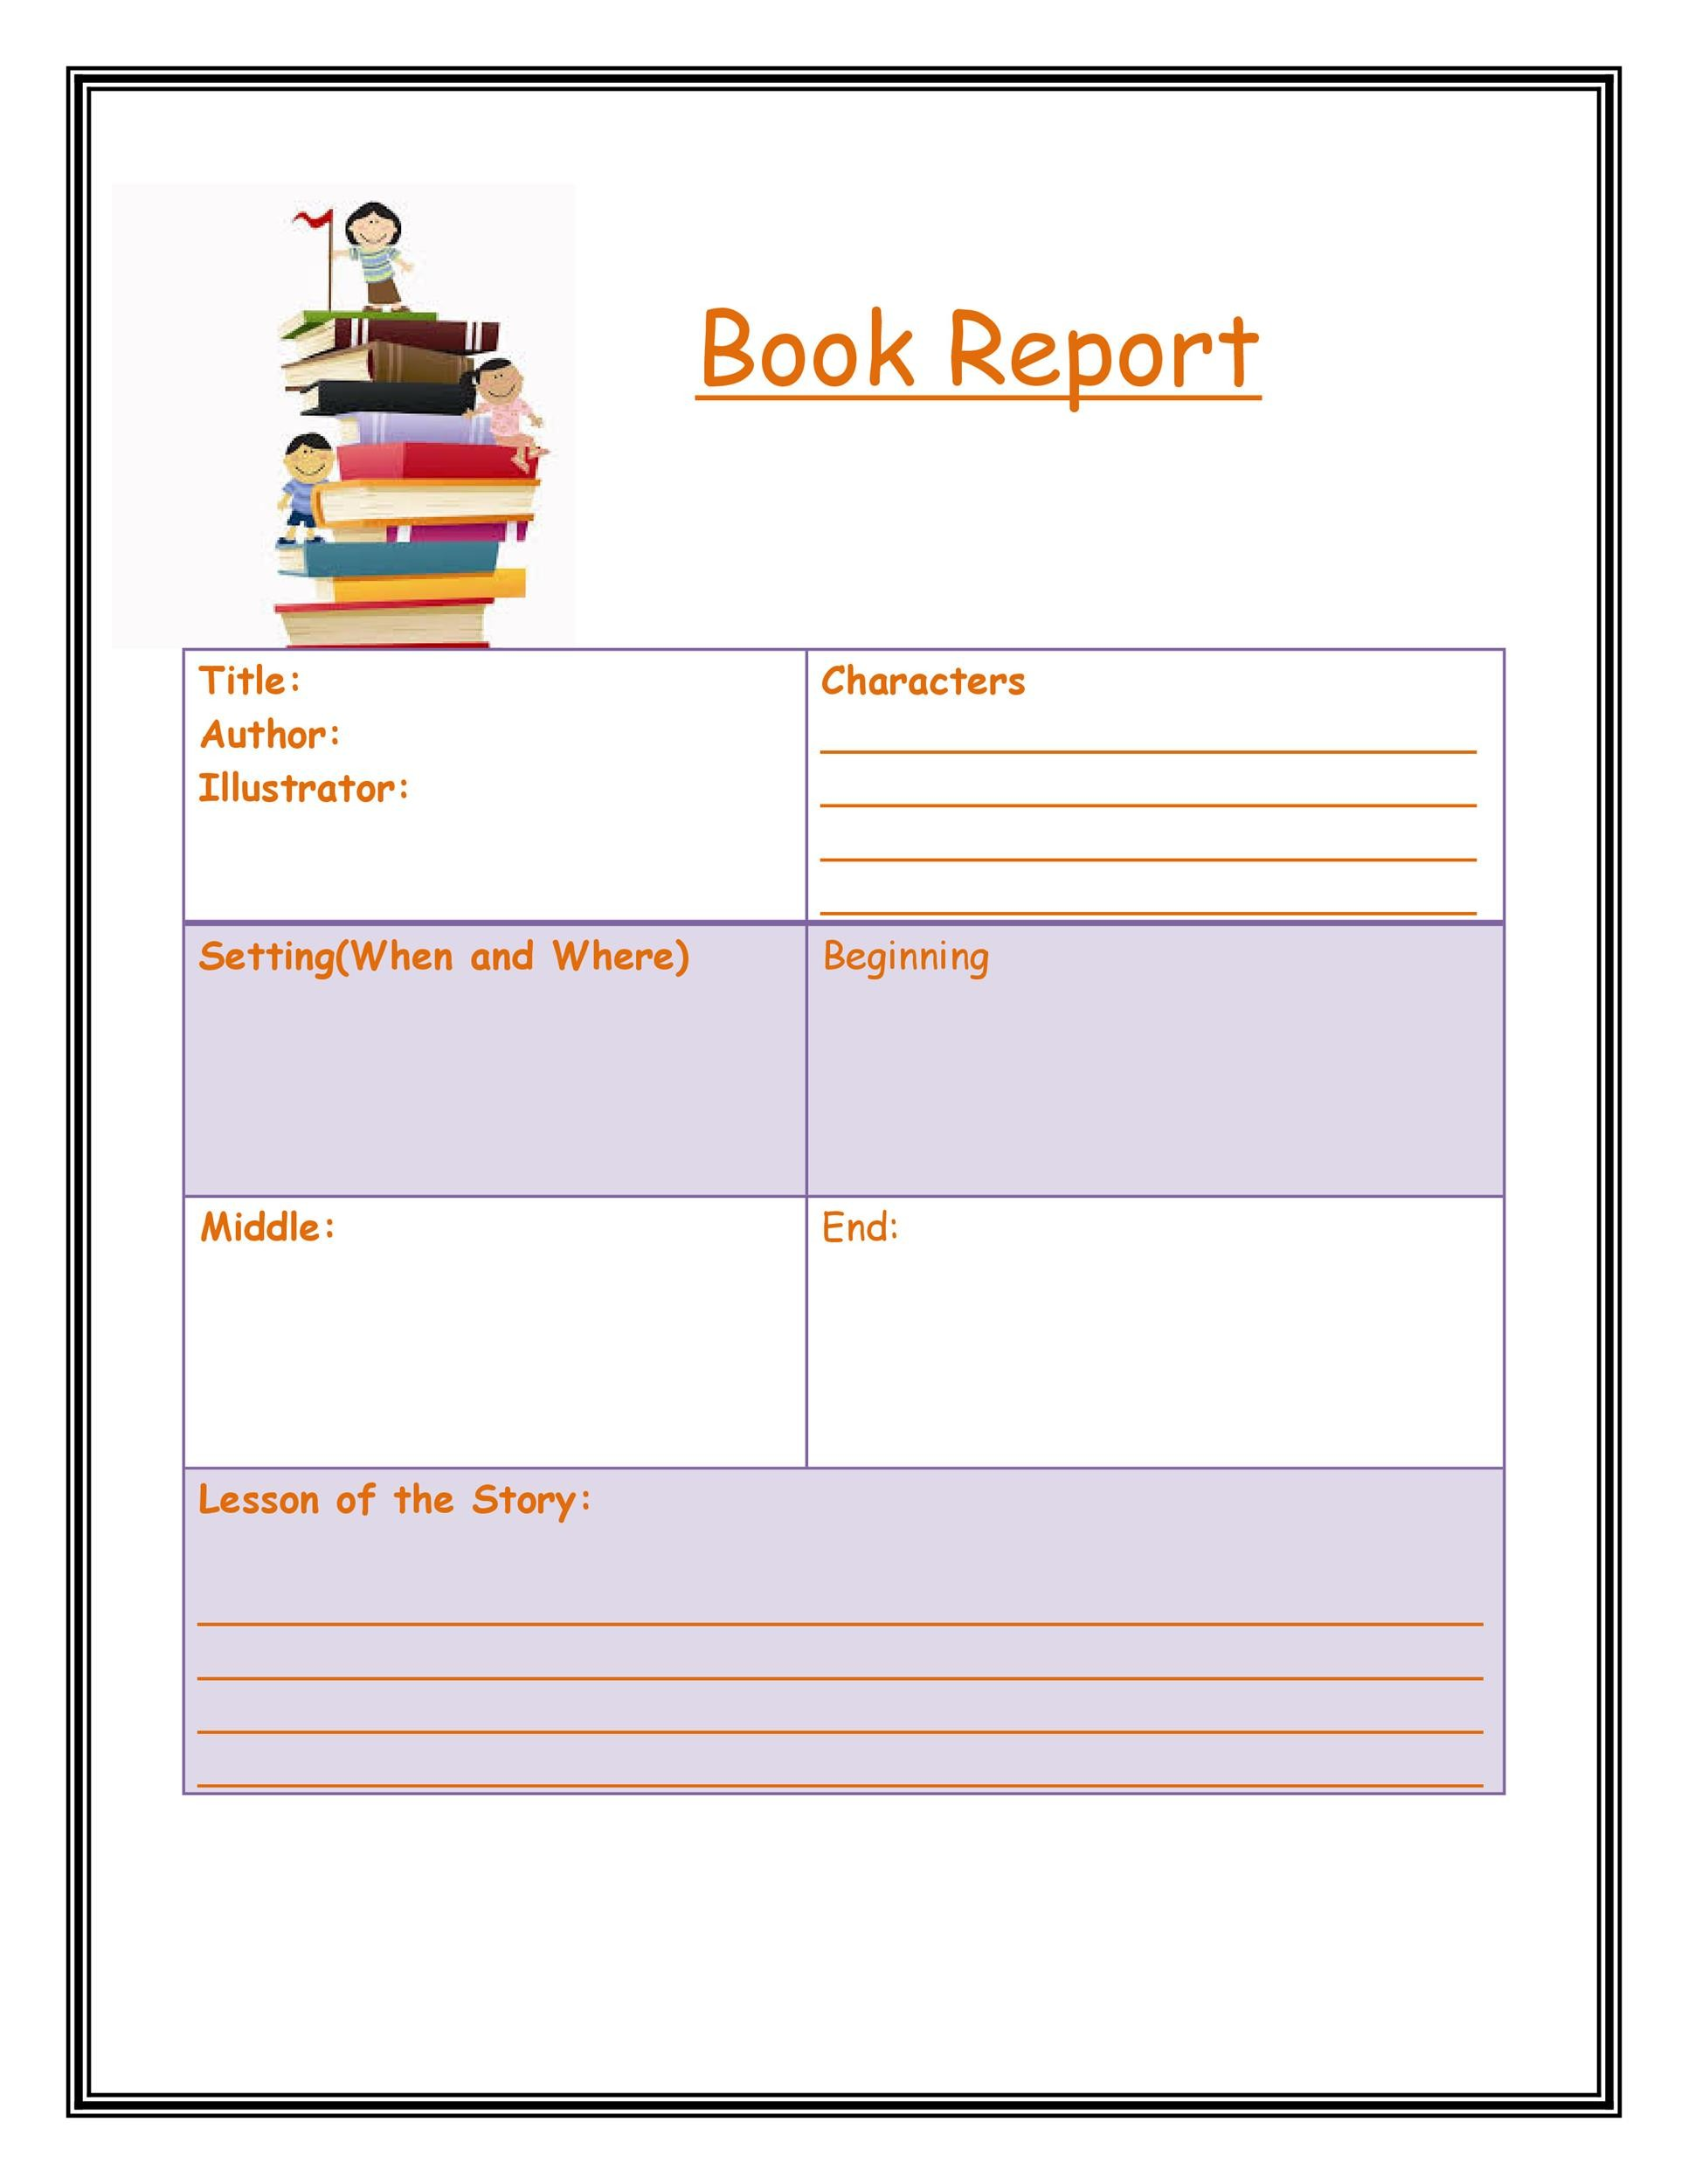 10th grade book report directions